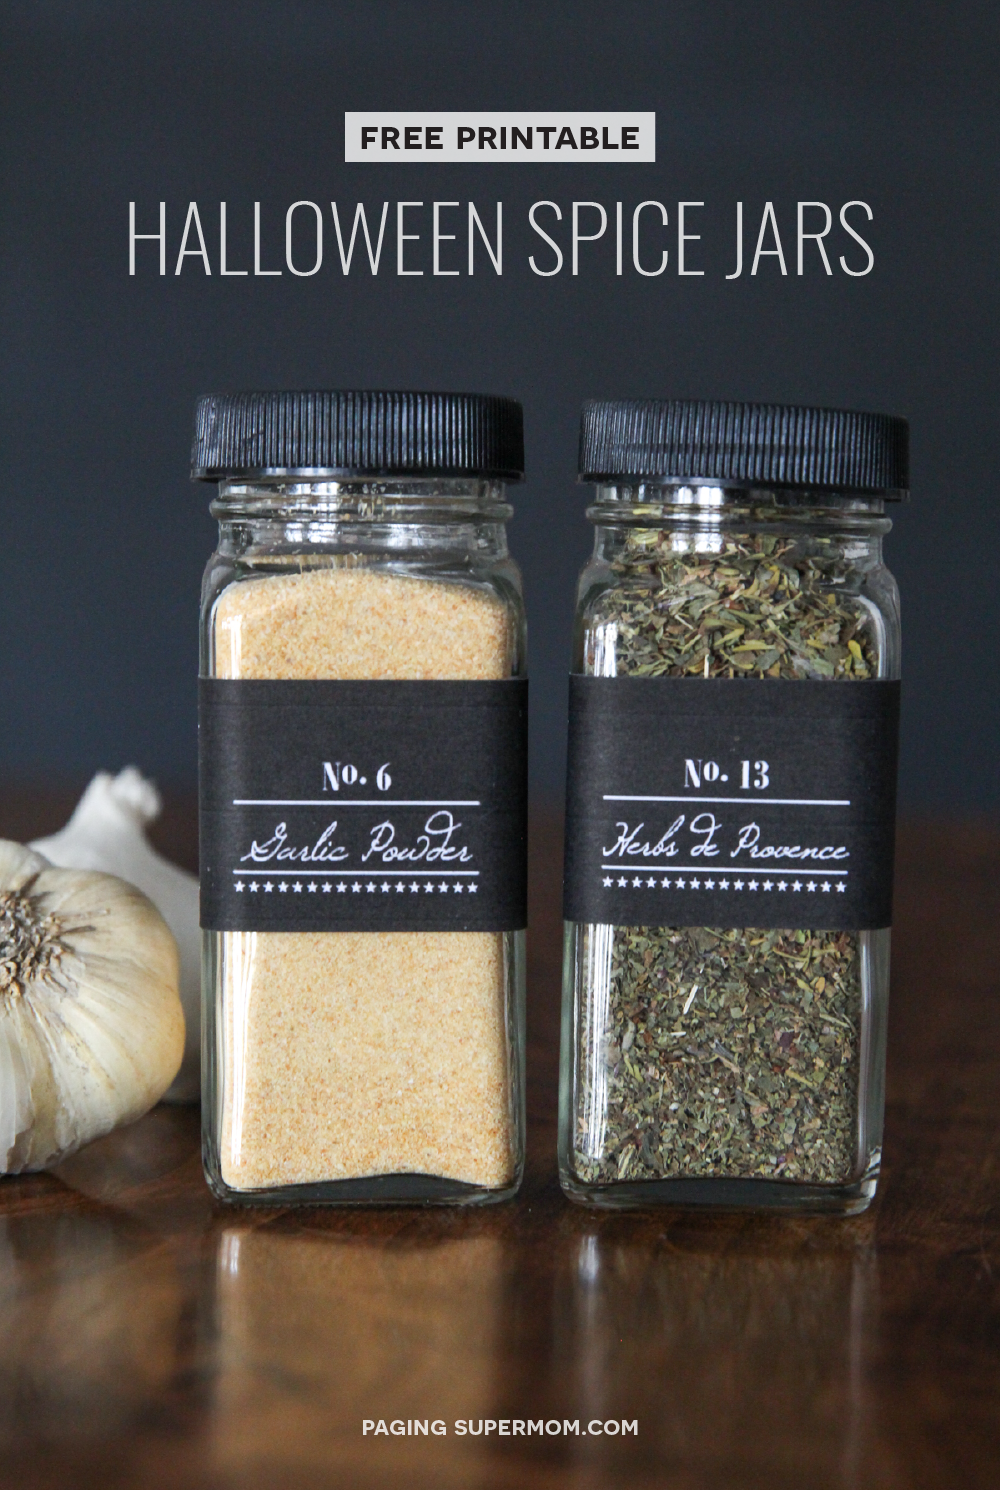 Halloween Spice Jar Labels